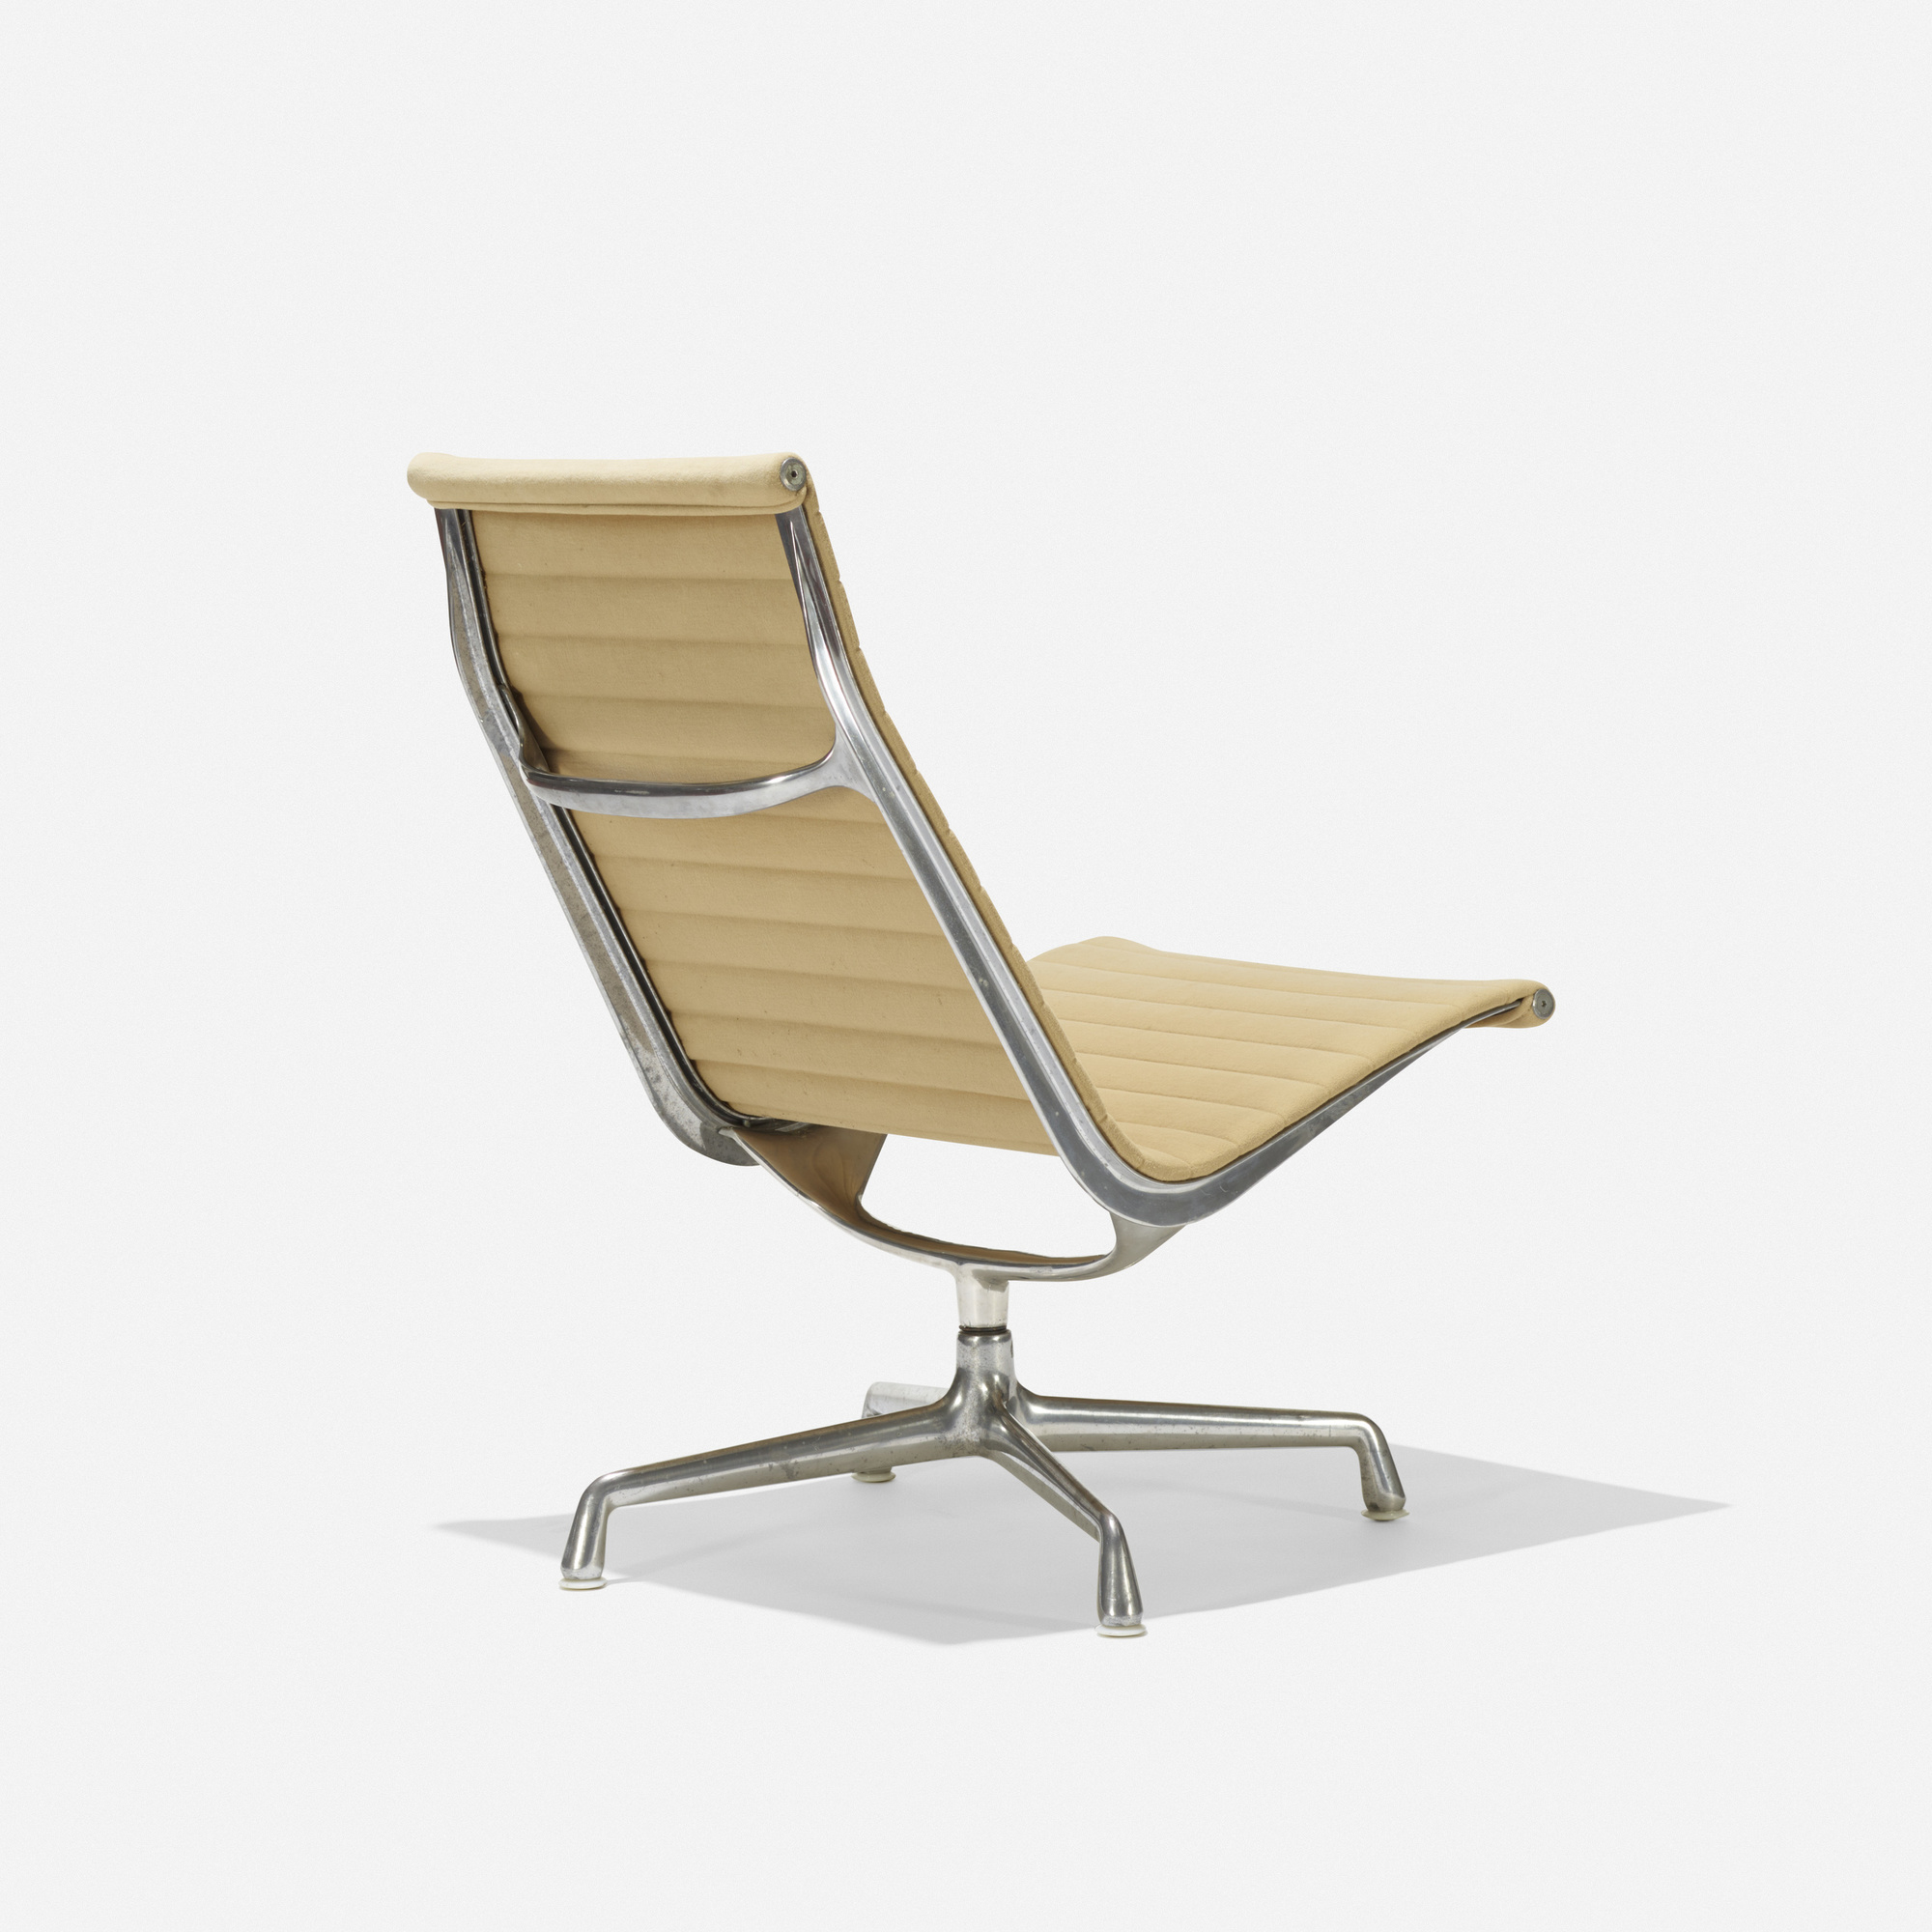 140: Charles And Ray Eames / Aluminum Group Lounge Chair (1 Of 3)